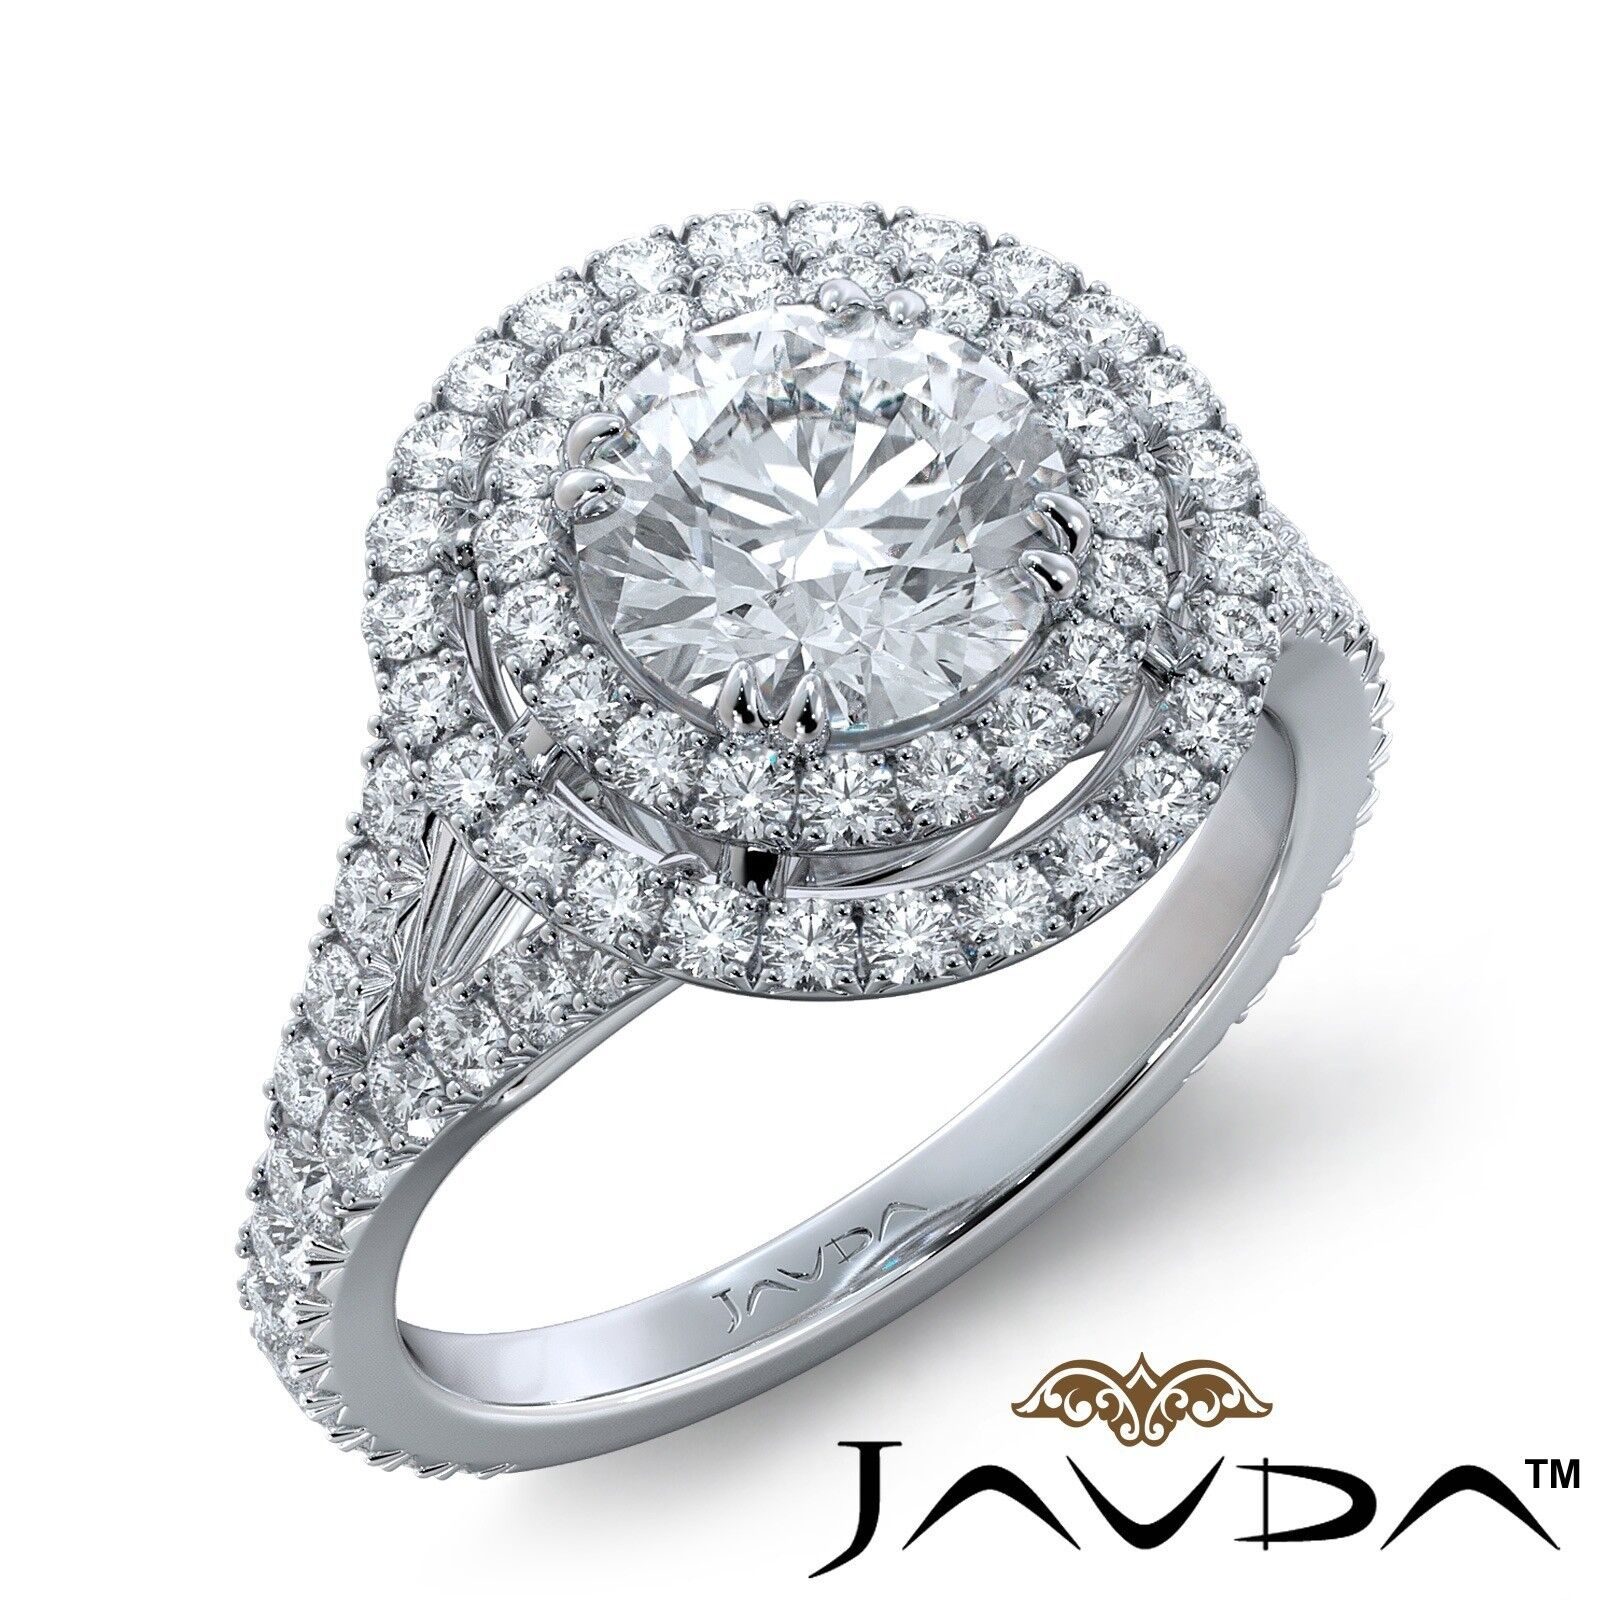 2.05ct French Pave Gala Halo Round Diamond Engagement Ring GIA F-VVS1 White Gold